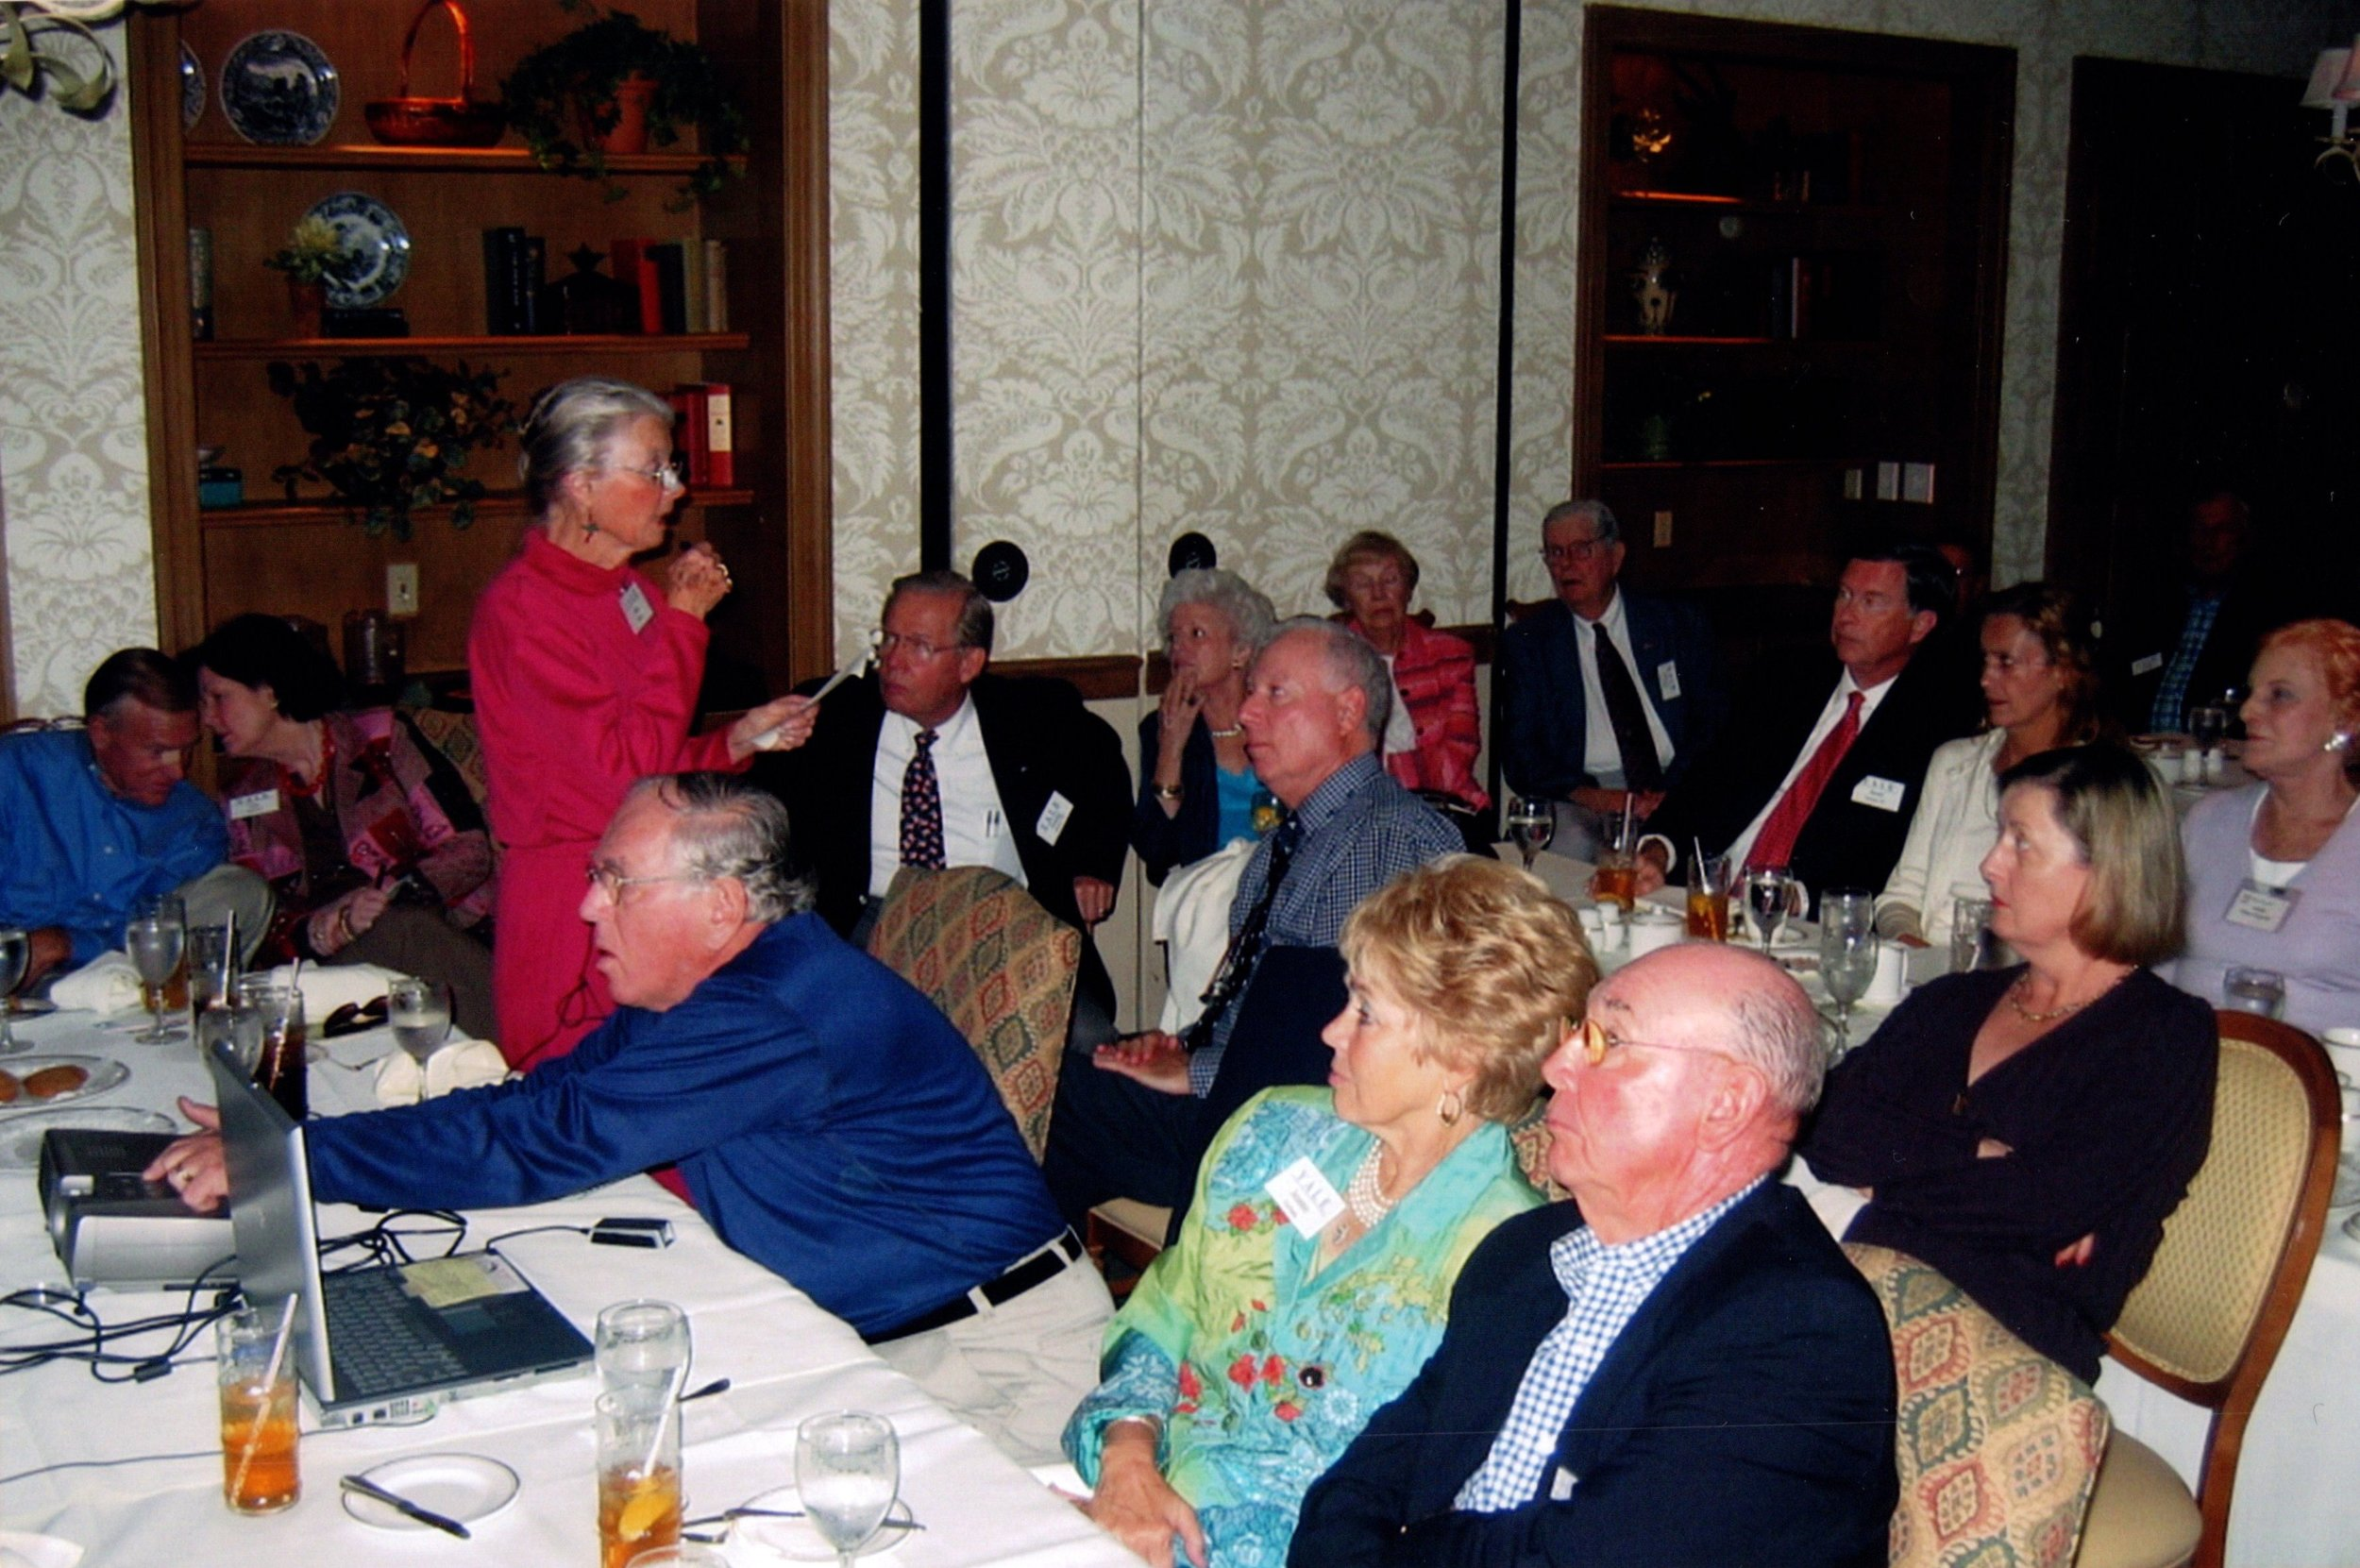 3_29_2007 - YALE CLUB LECTURE - PROF. MINH LUONG 5.jpg